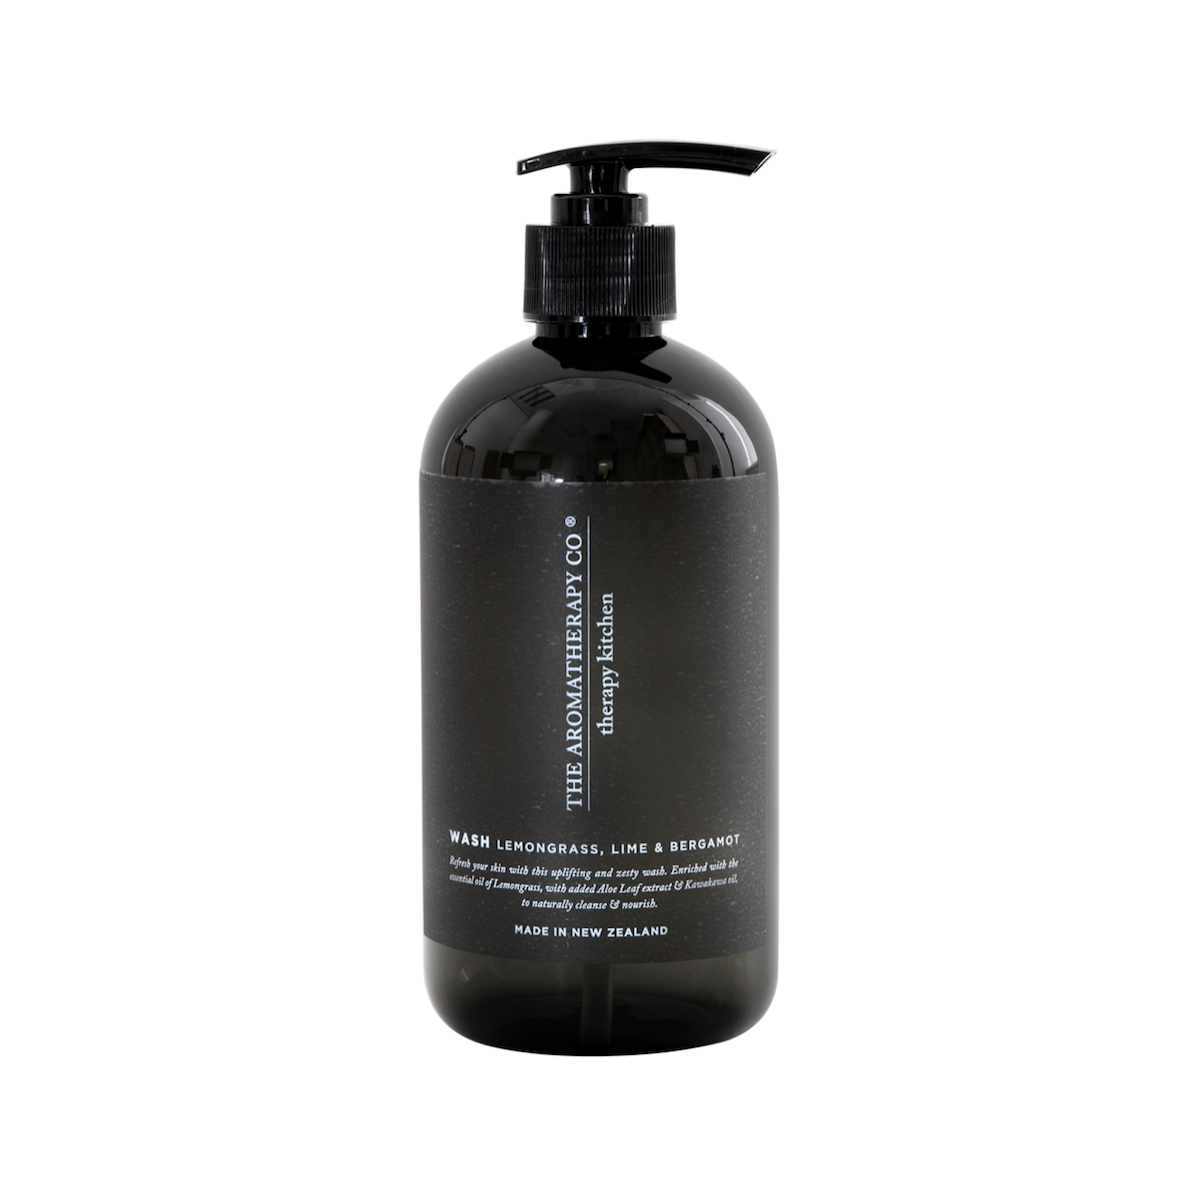 Lemongrass Lime and Bergamot Hand Wash